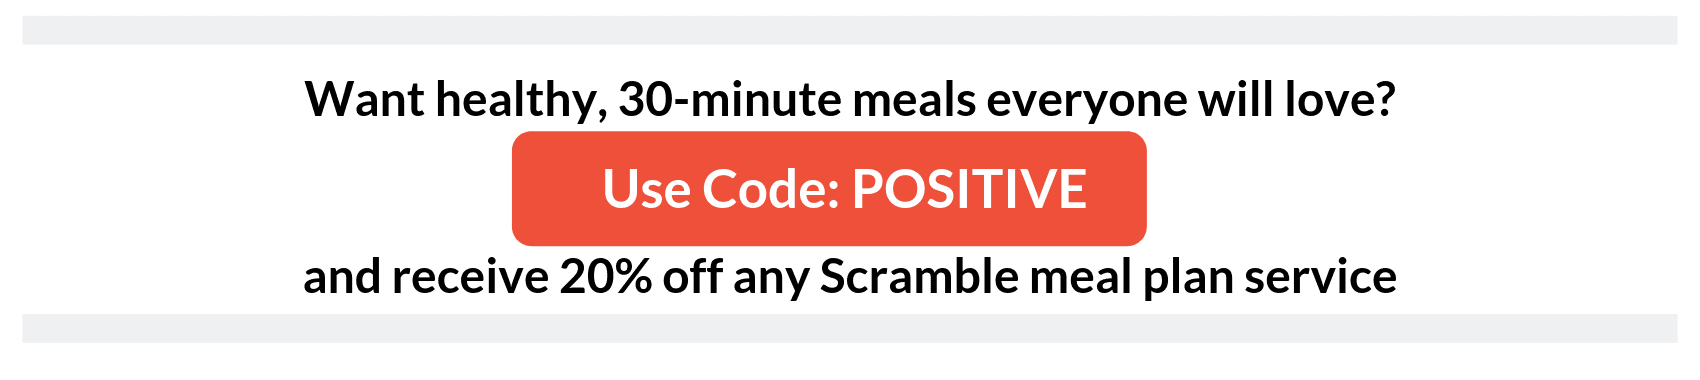 Get 20% off an any Scramble Meal plan service